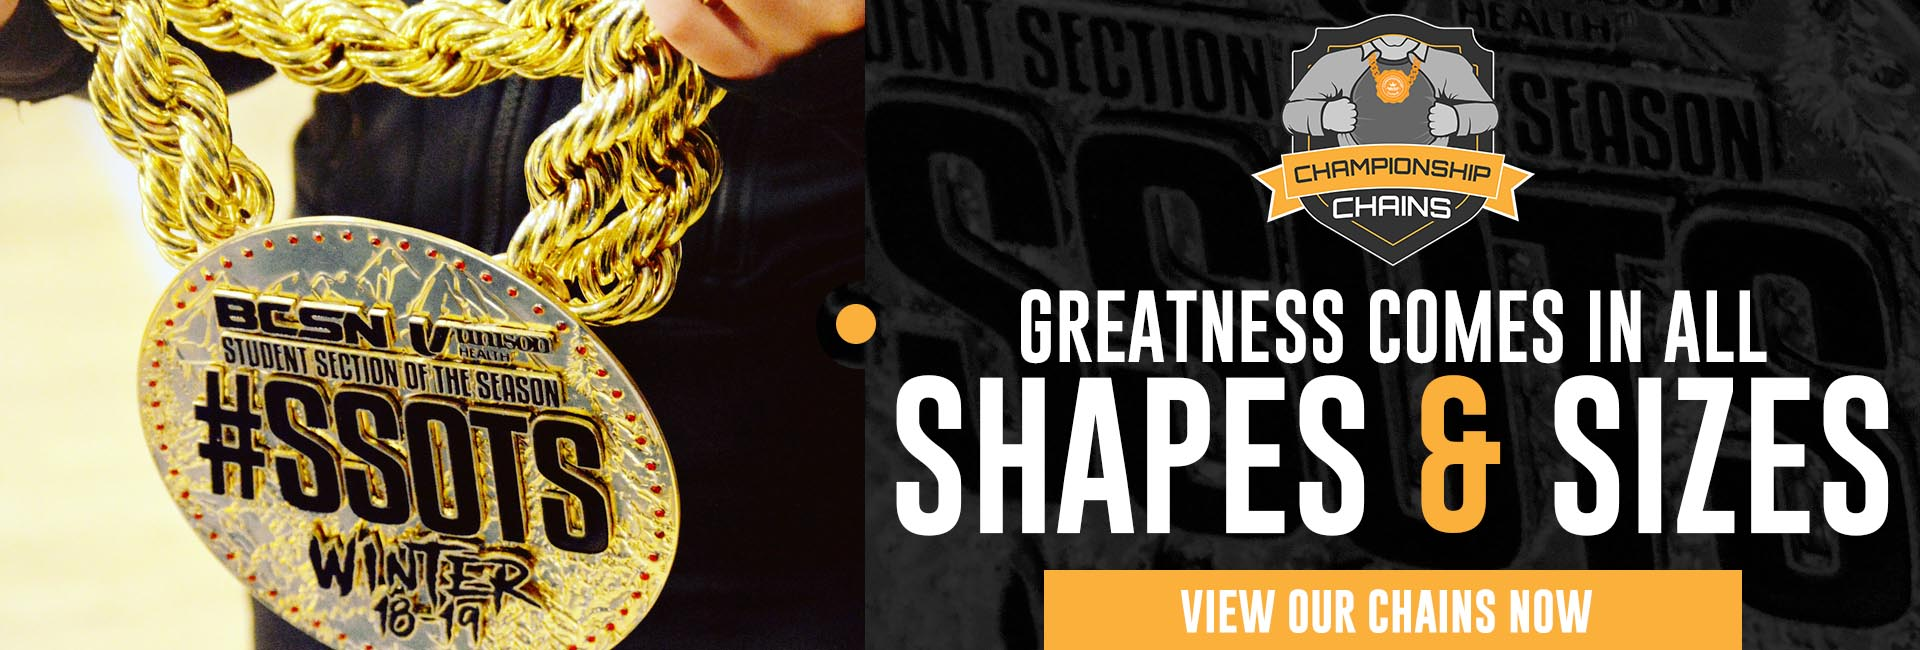 View our premier Championship Chains showroom now!